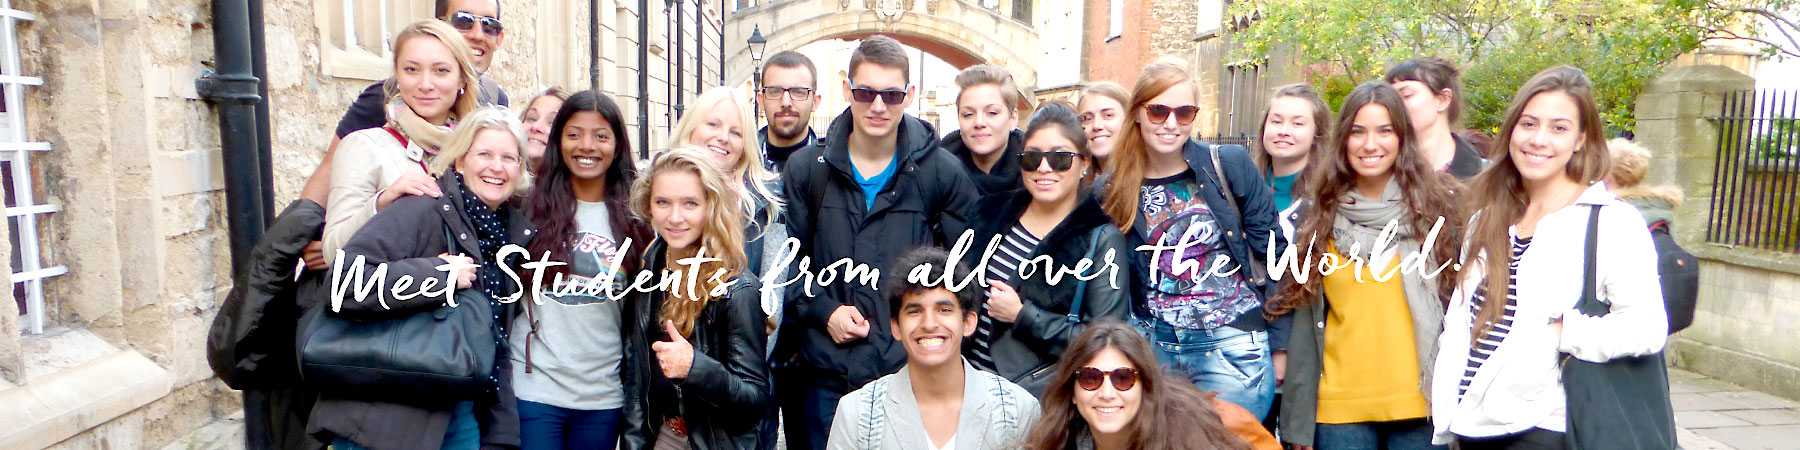 Meet students from all over the world